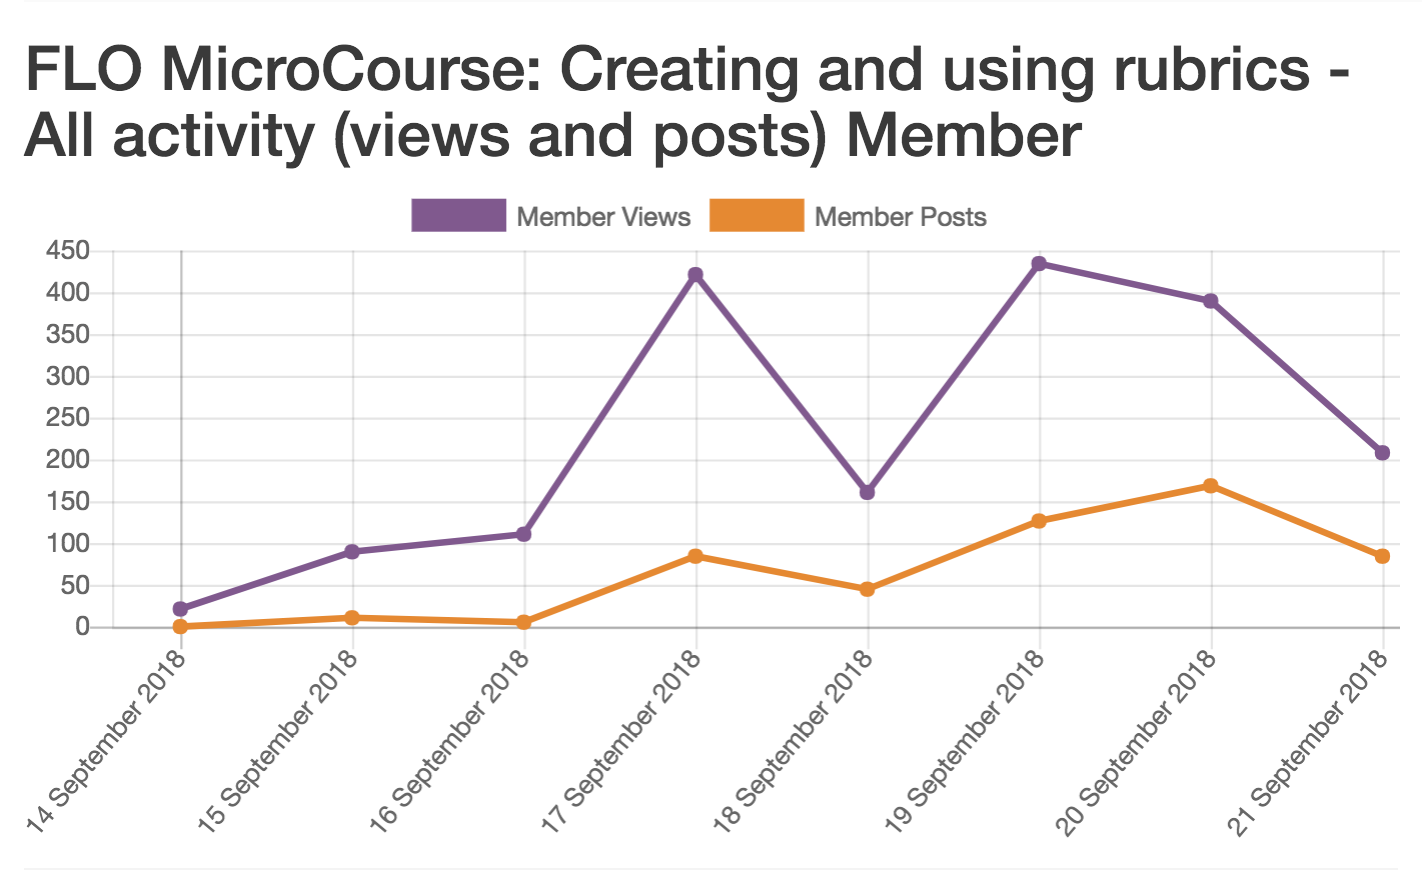 A graph showing high engagement in the Creating and Using Rubrics MicroCourse